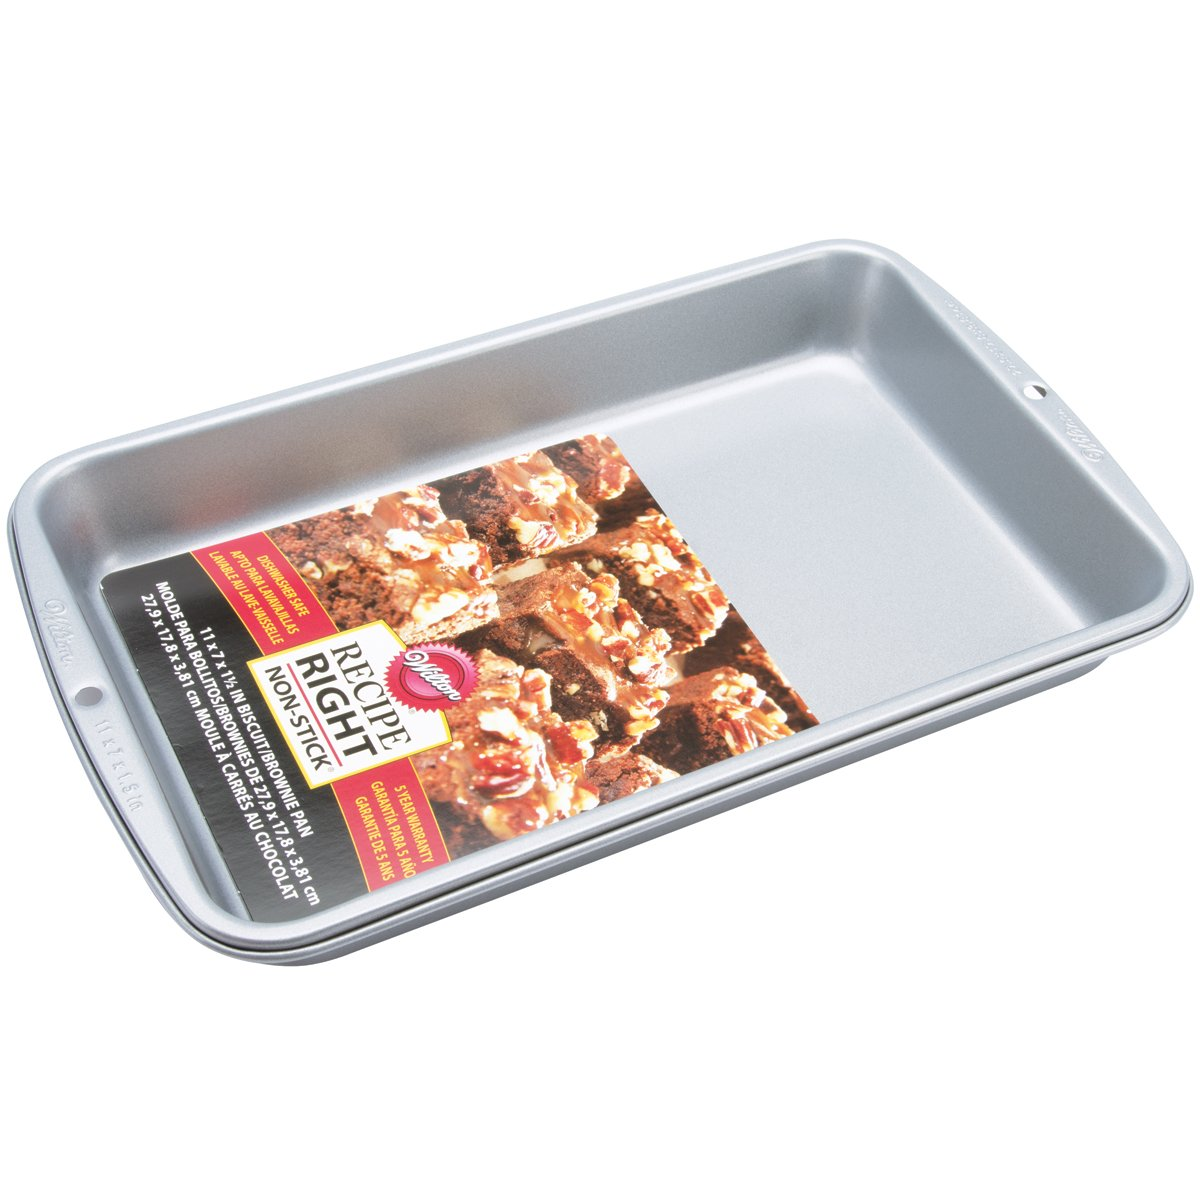 Wilton Recipe Right 11 Inch x 7 Inch x 0.5 inch Biscuit Brownie Pan by Wilton (Image #1)